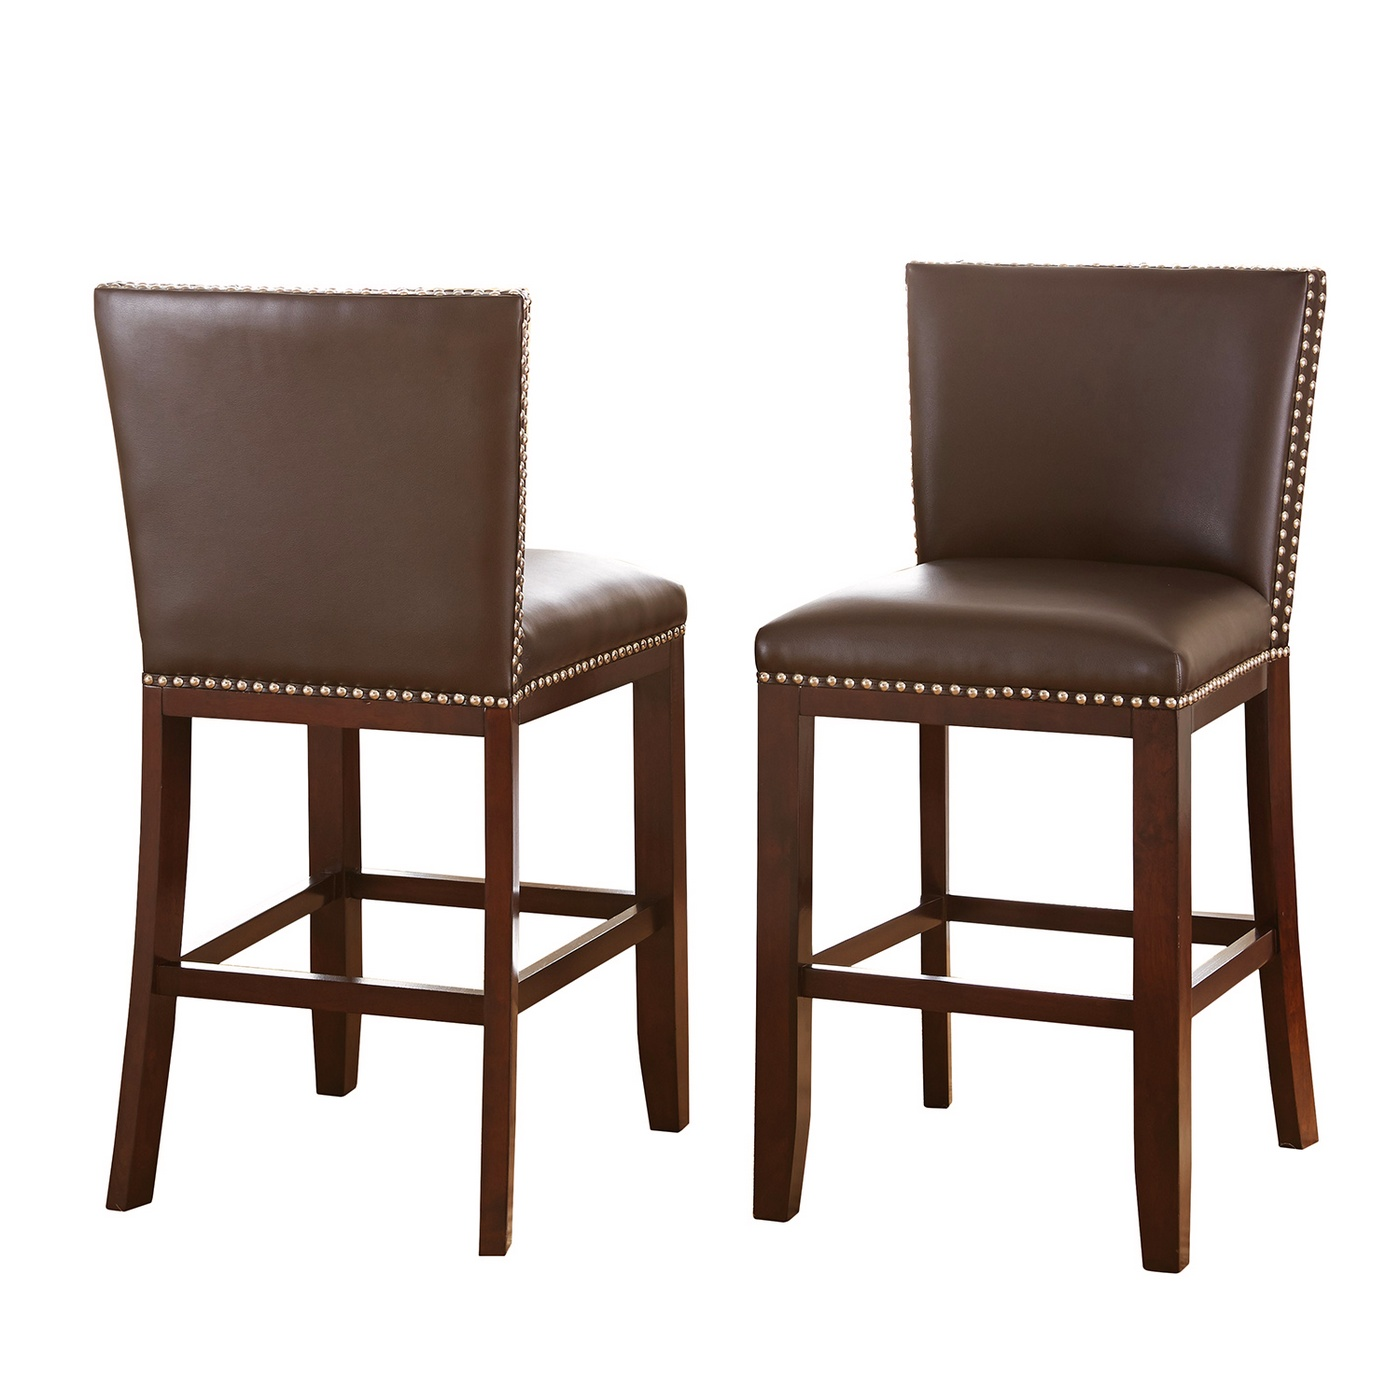 Bar Stool Chair Set Of 2 Tiffany Modern Hardwood Brown Vinyl Counter